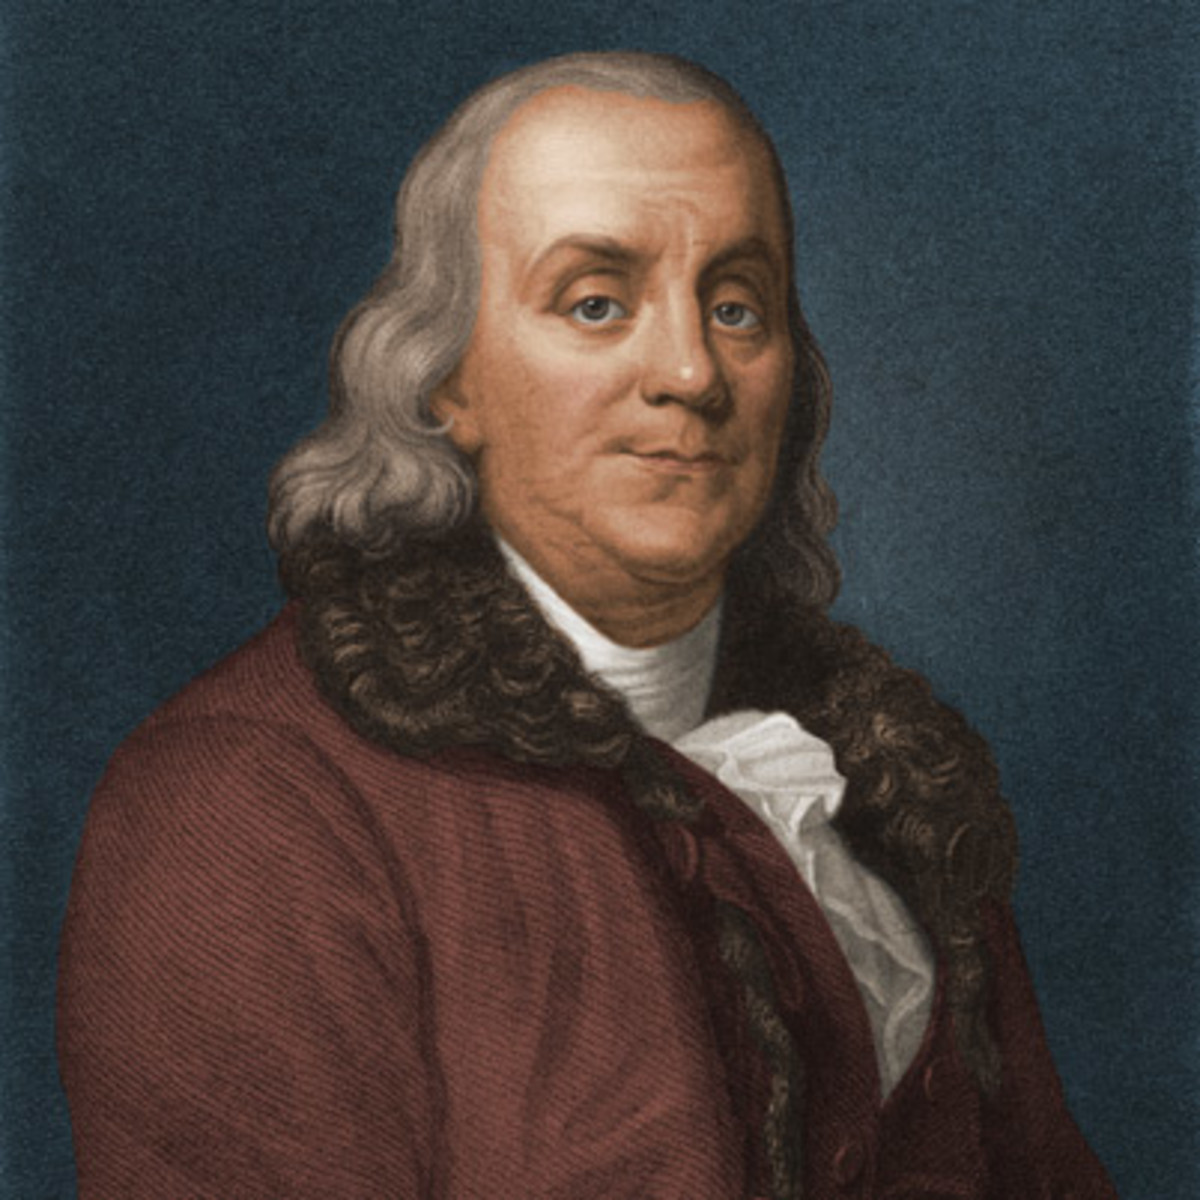 Benjamin Franklin Diplomat Polymath And Member Of 18th